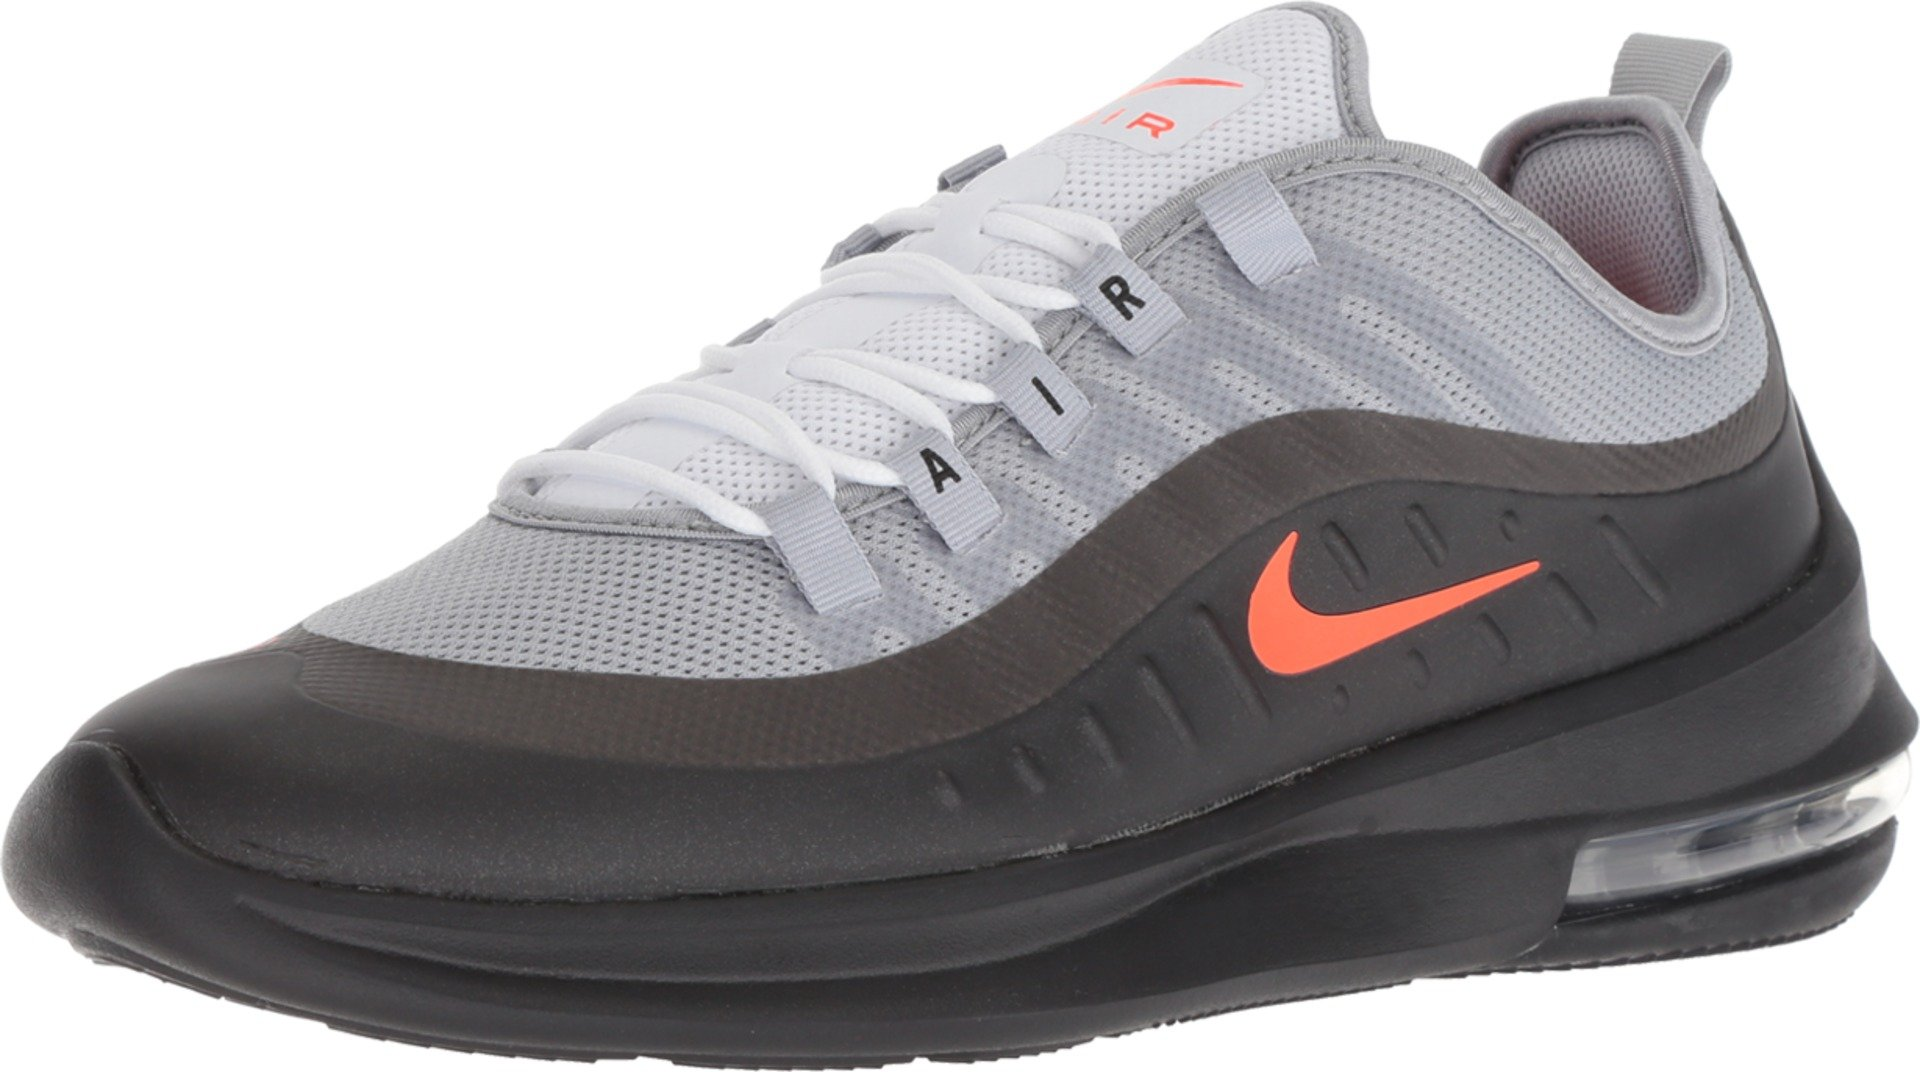 arrives presenting picked up Galleon - Nike Men's Air Max Axis Running Shoe, Wolf Grey/Total ...